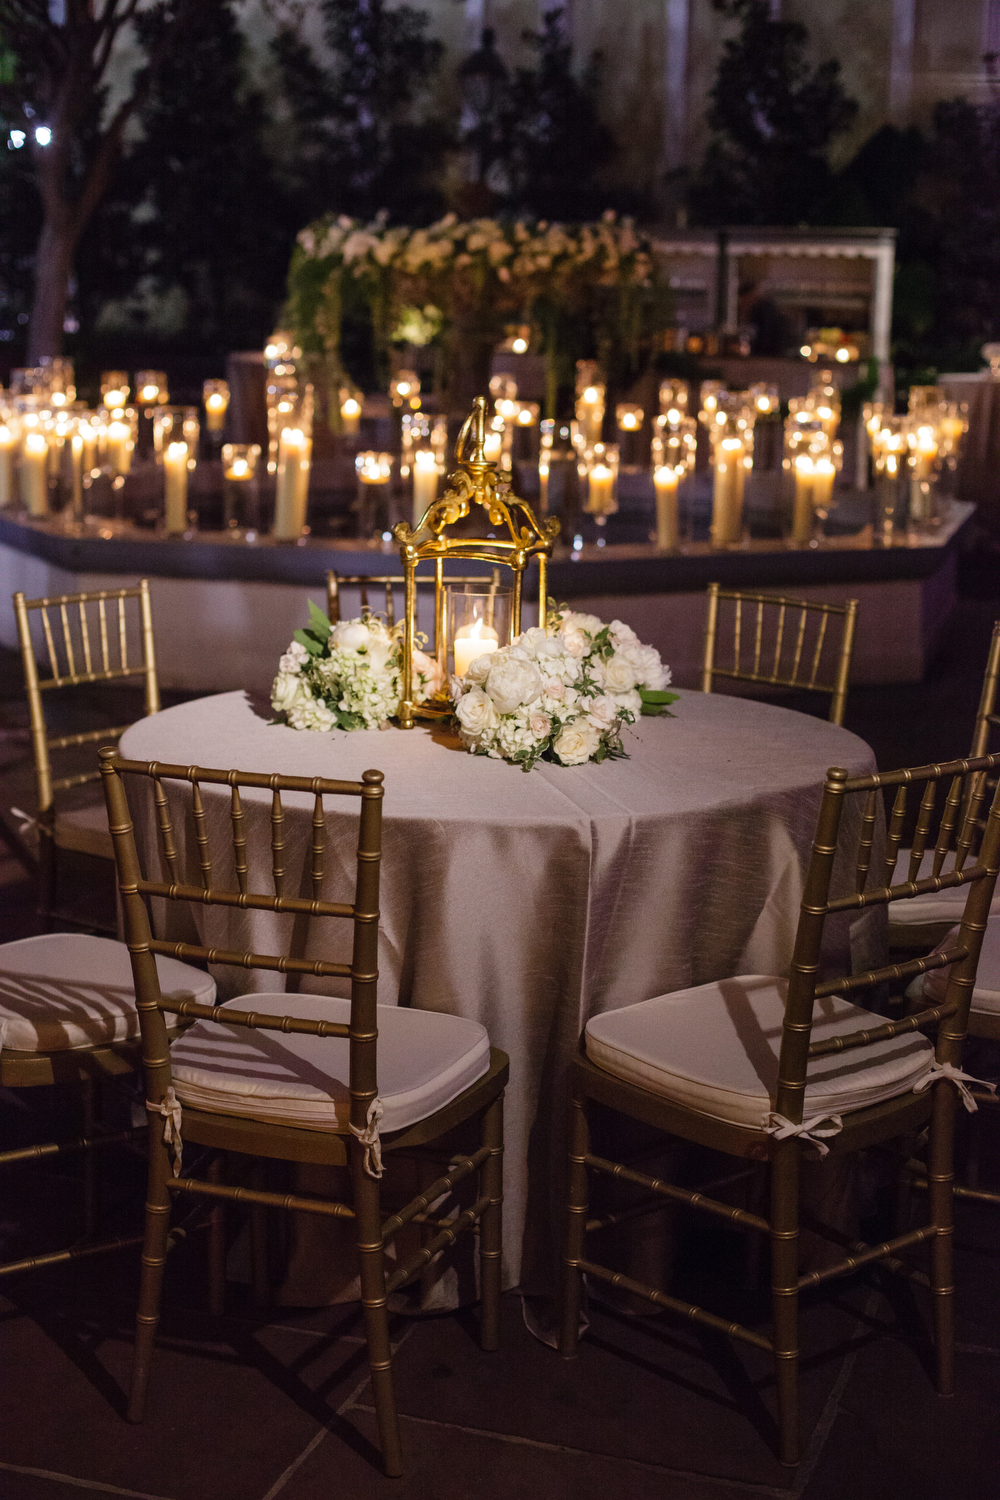 small wedding reception table with golden lantern and candle light around a fountain in an outdoor courtyard at night